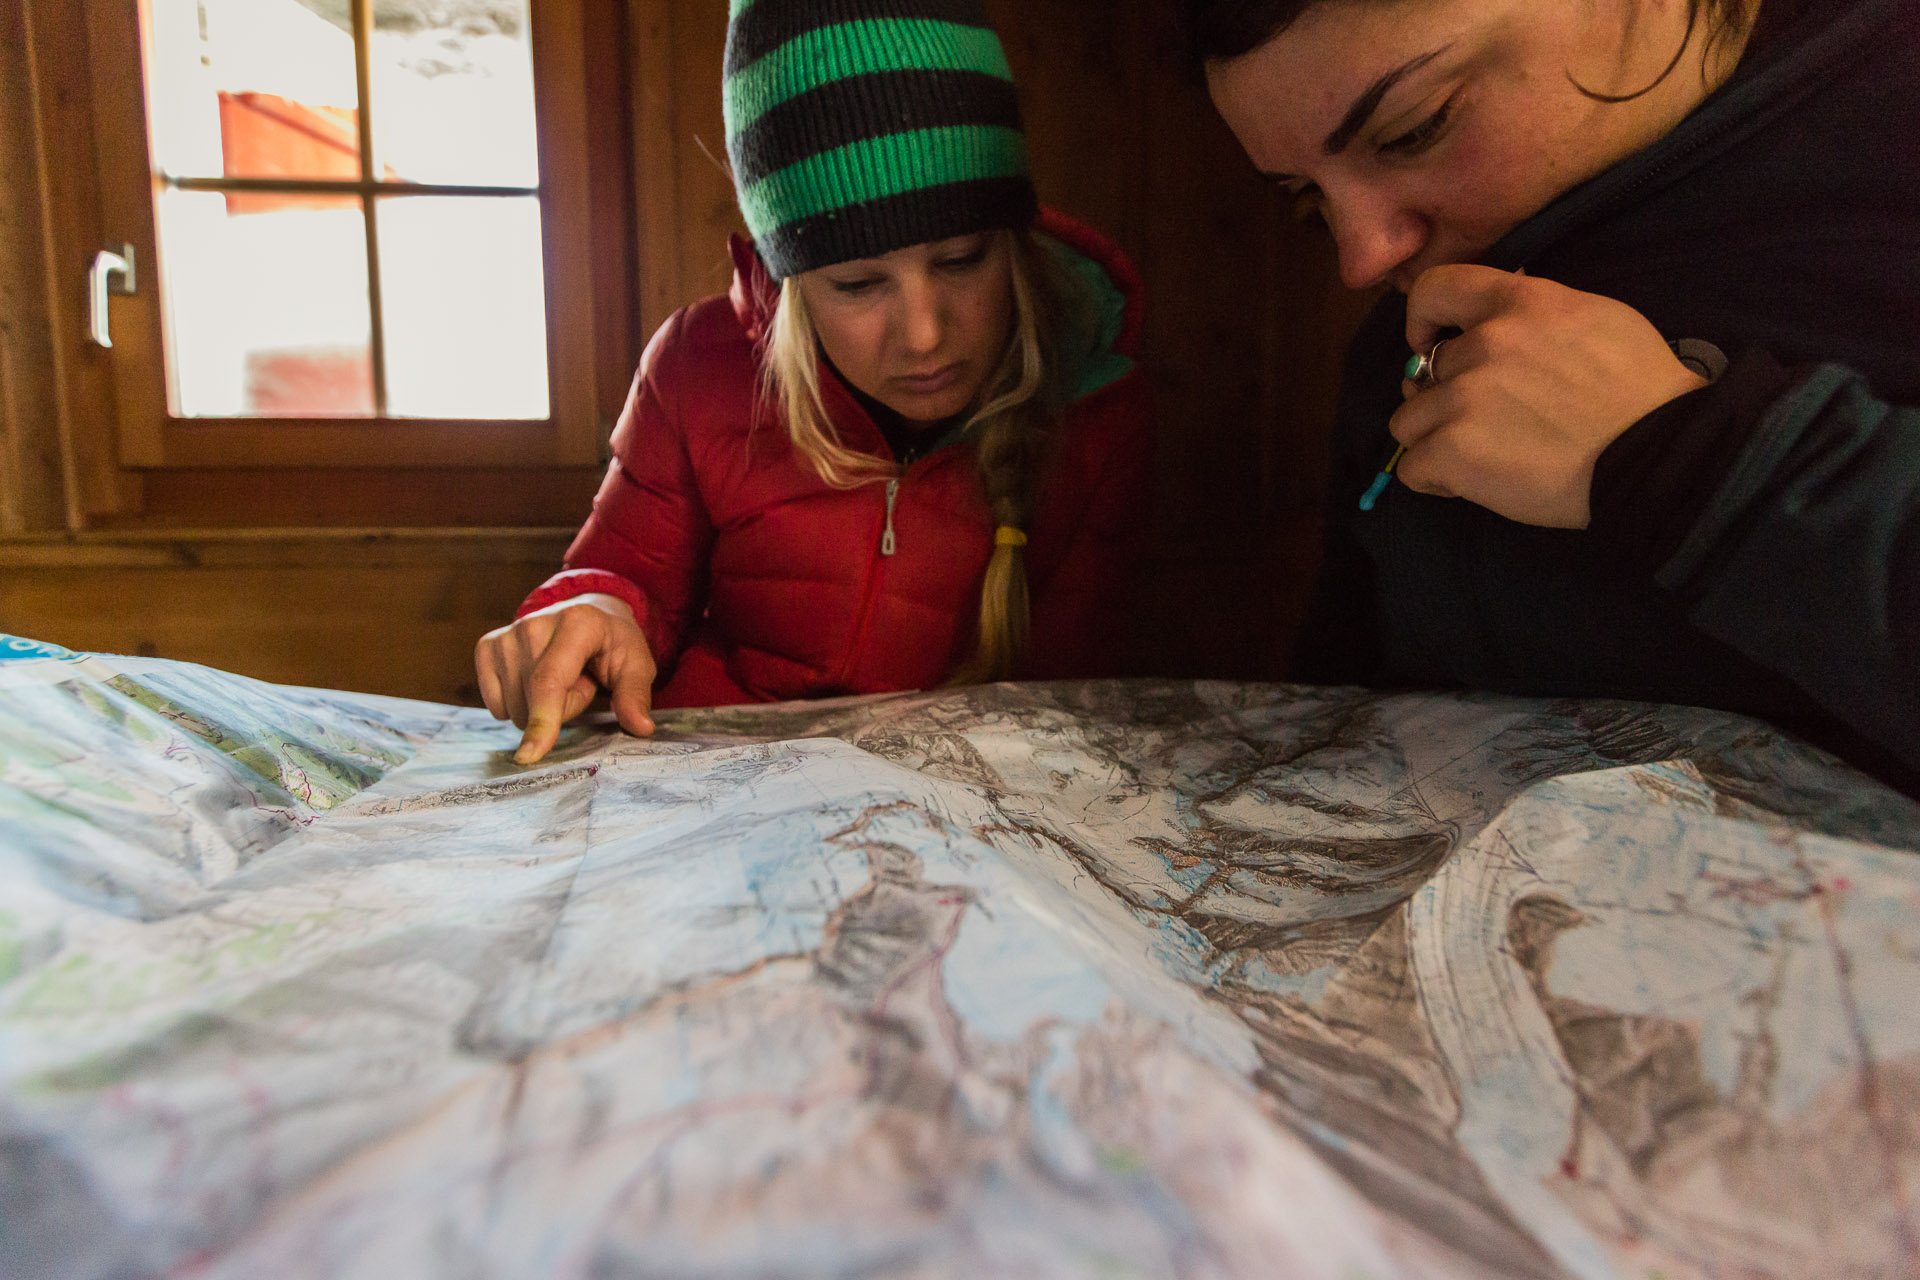 Liz Daley and Maria DeBari check the map before leaving the hut for the day.